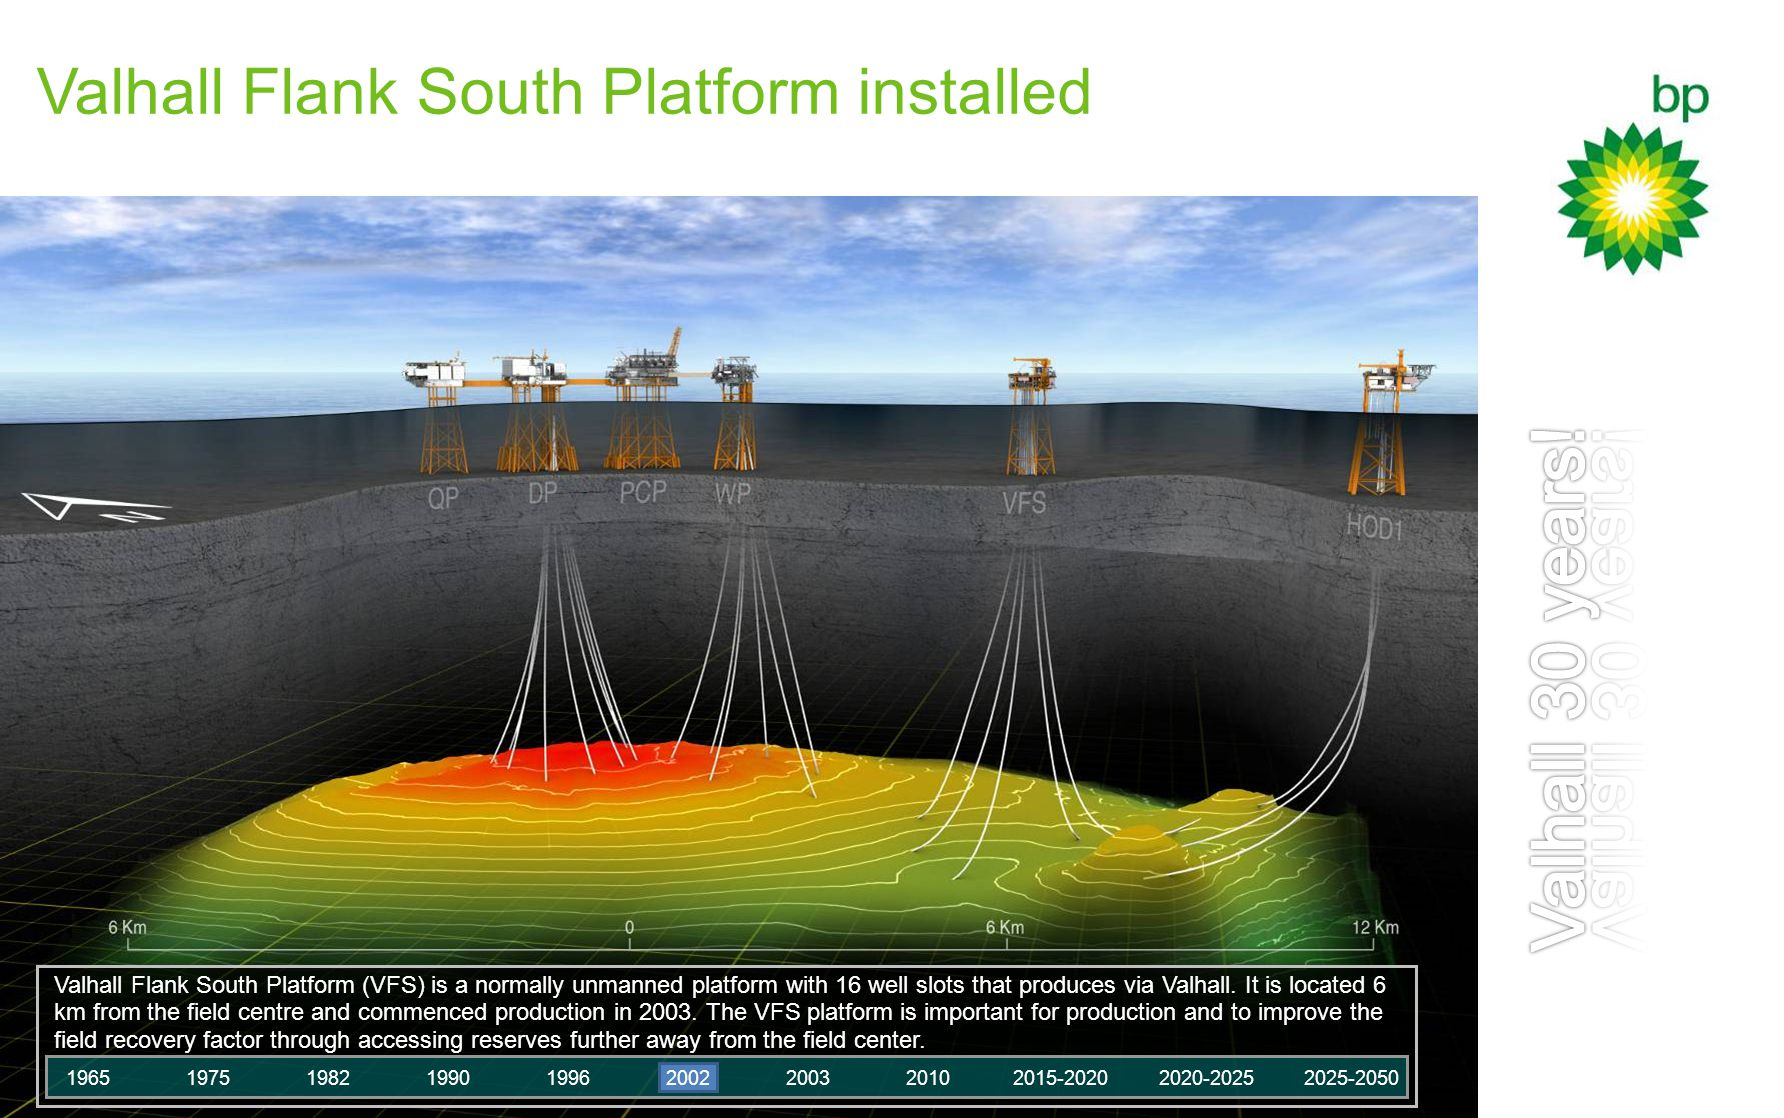 Valhall Flank South Platform (VFS) is a normally unmanned platform with 16 well slots that produces via Valhall.